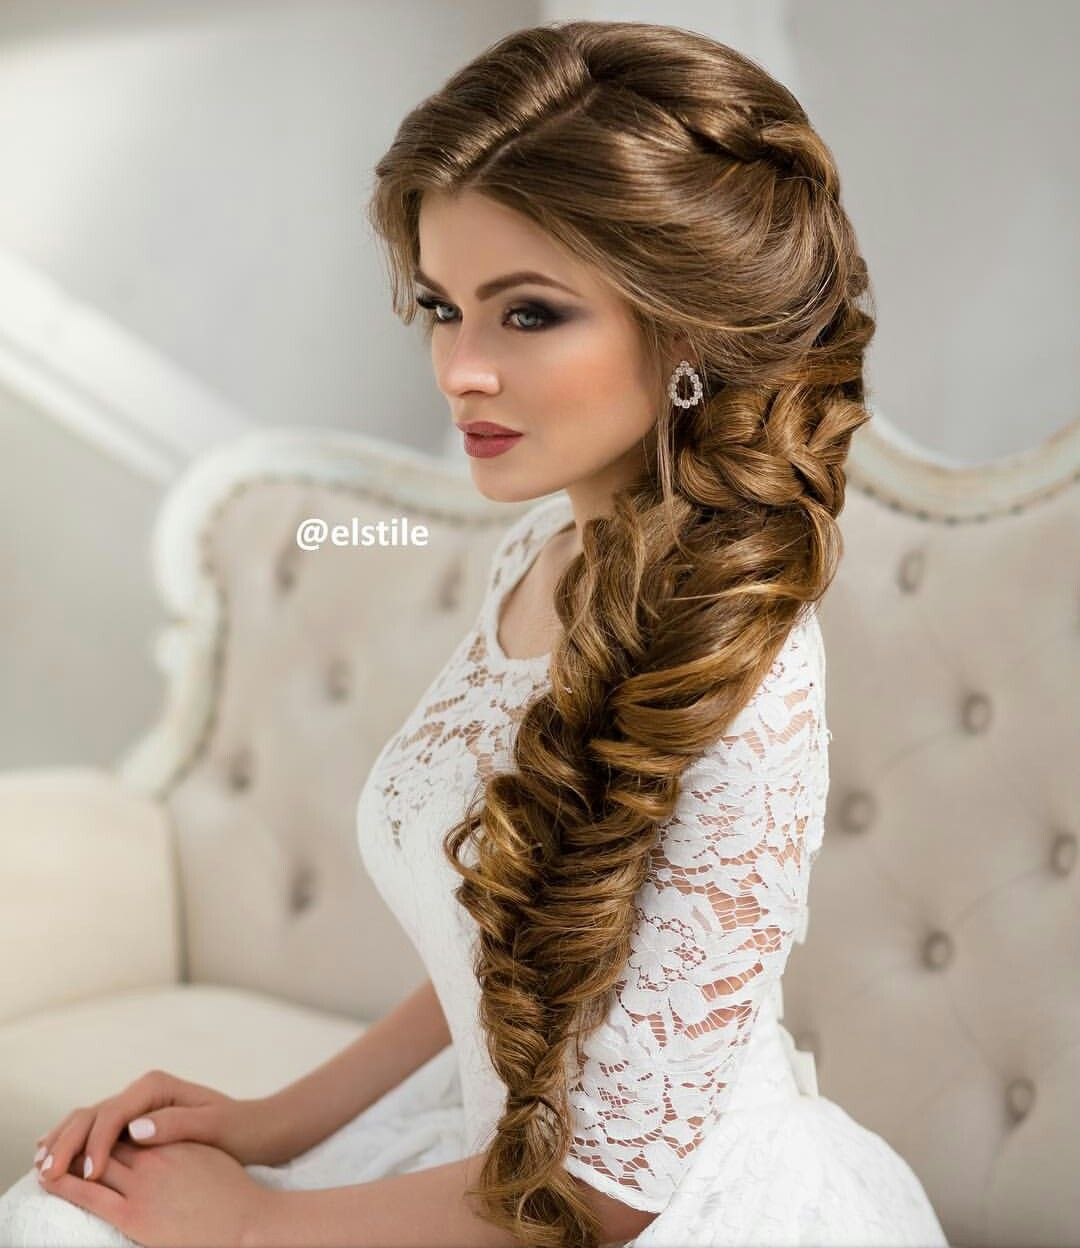 Hairstyles For Weddings 2015 Long Wavy Wedding Hairstyle And Makeup Wedding Deer And Flower